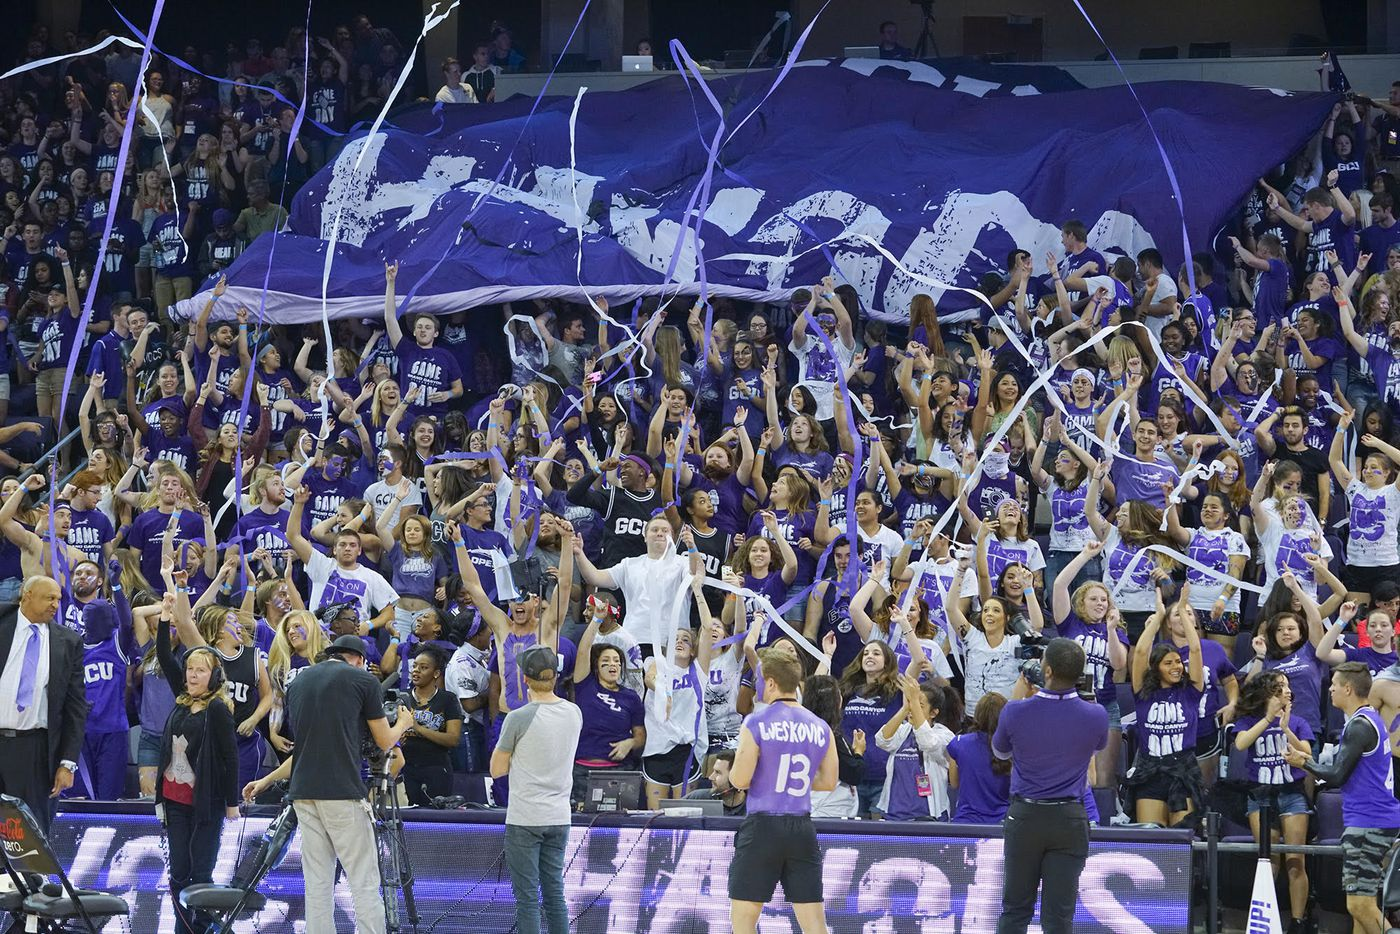 Grand Canyon College Basketball S Best Party Is Emerging